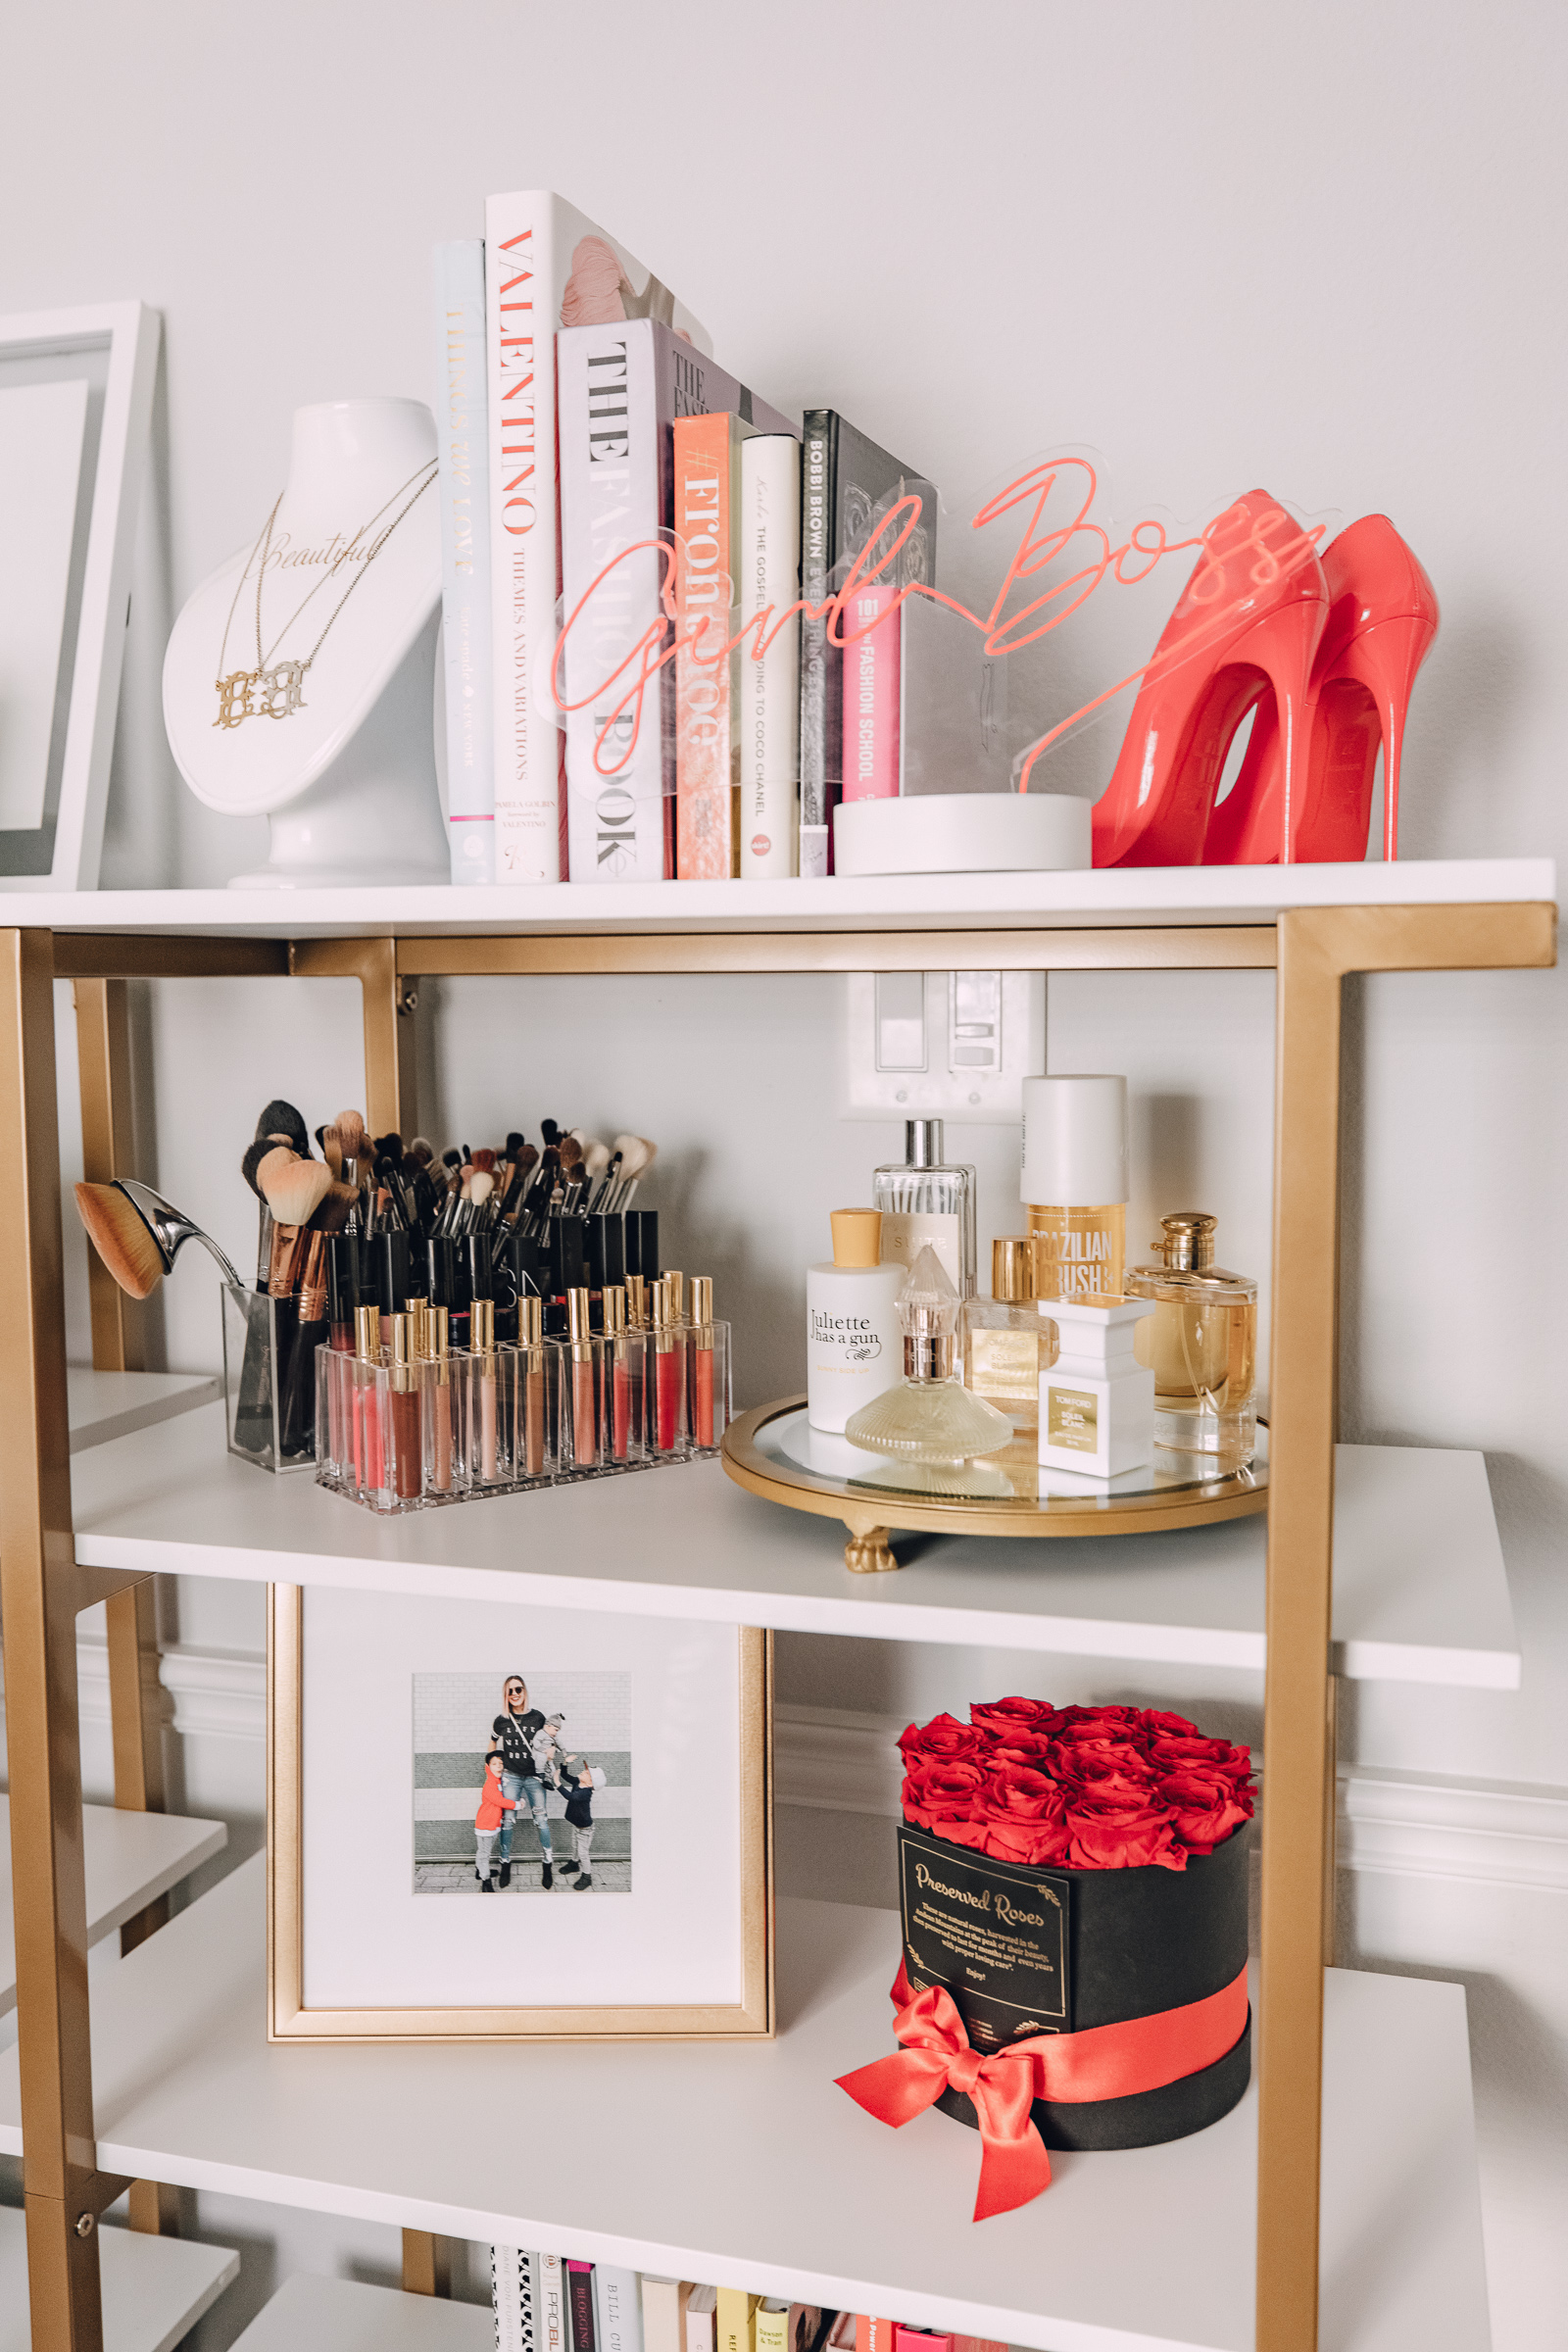 Houston blogger Elly Brown shares her Chic shared office decor and shelving decor from CosmoLiving